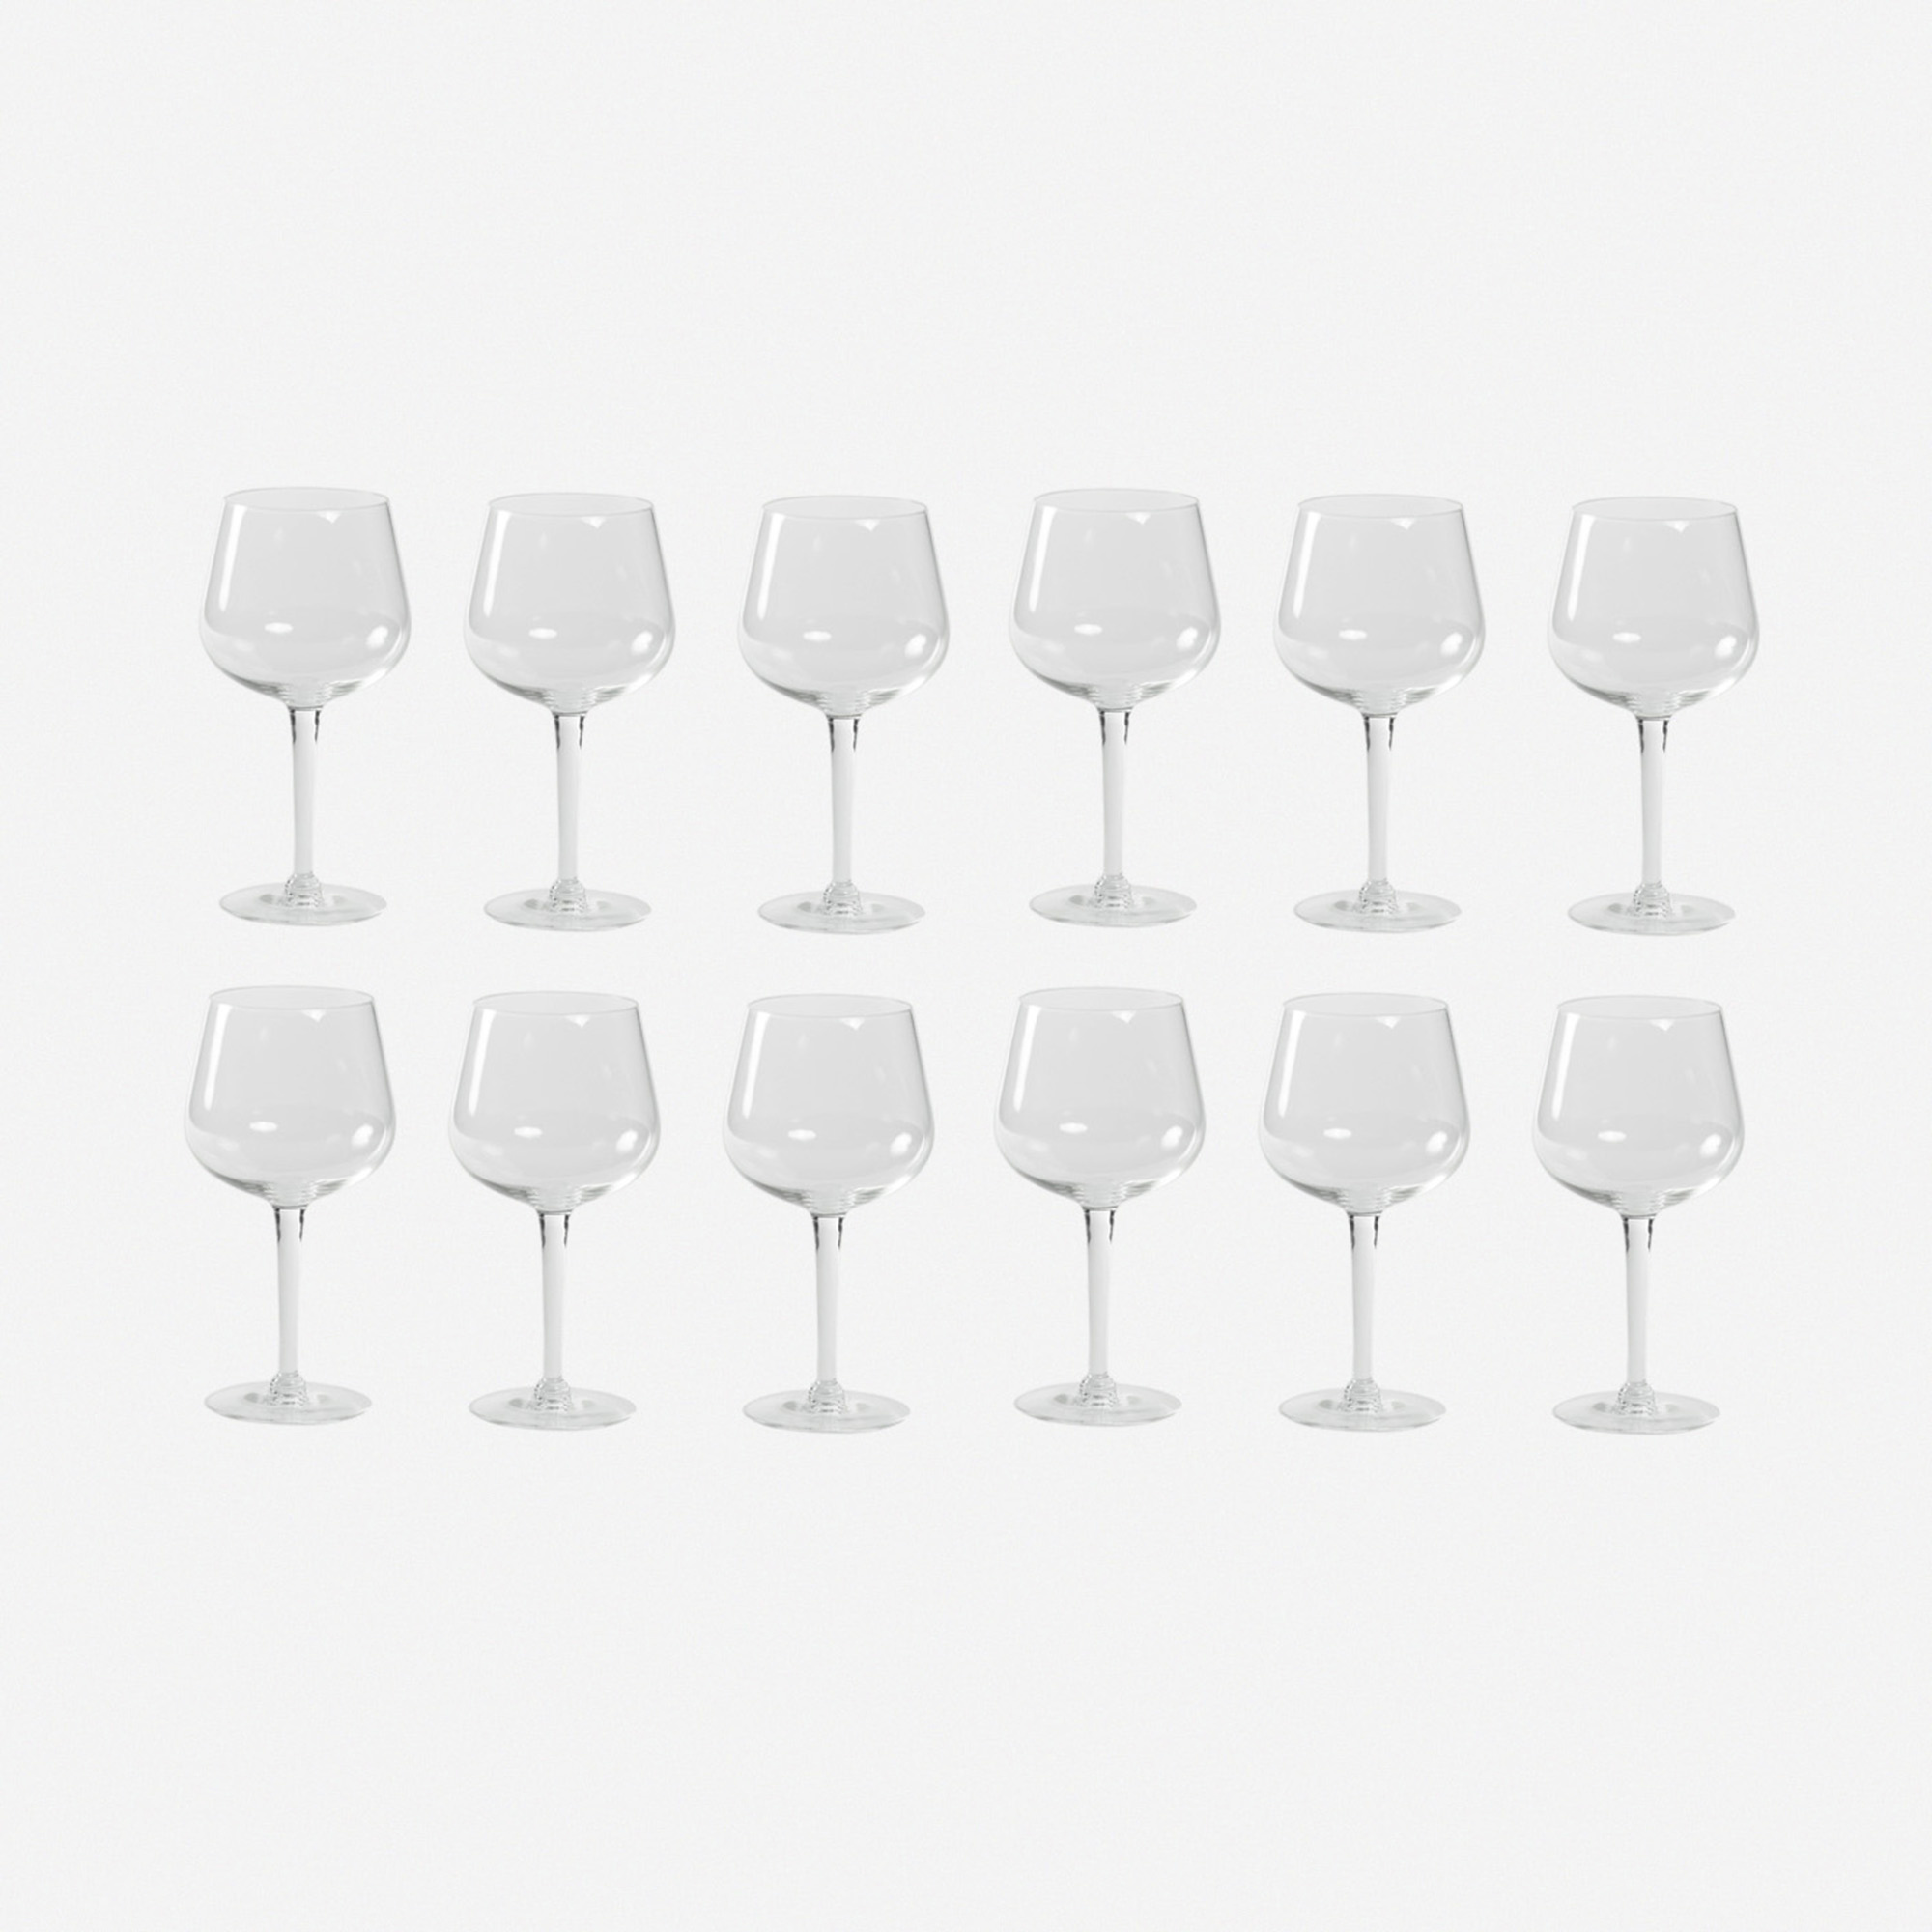 622: Garth and Ada Louise Huxtable / White Wine glasses from The Four Seasons, set of twelve (1 of 1)